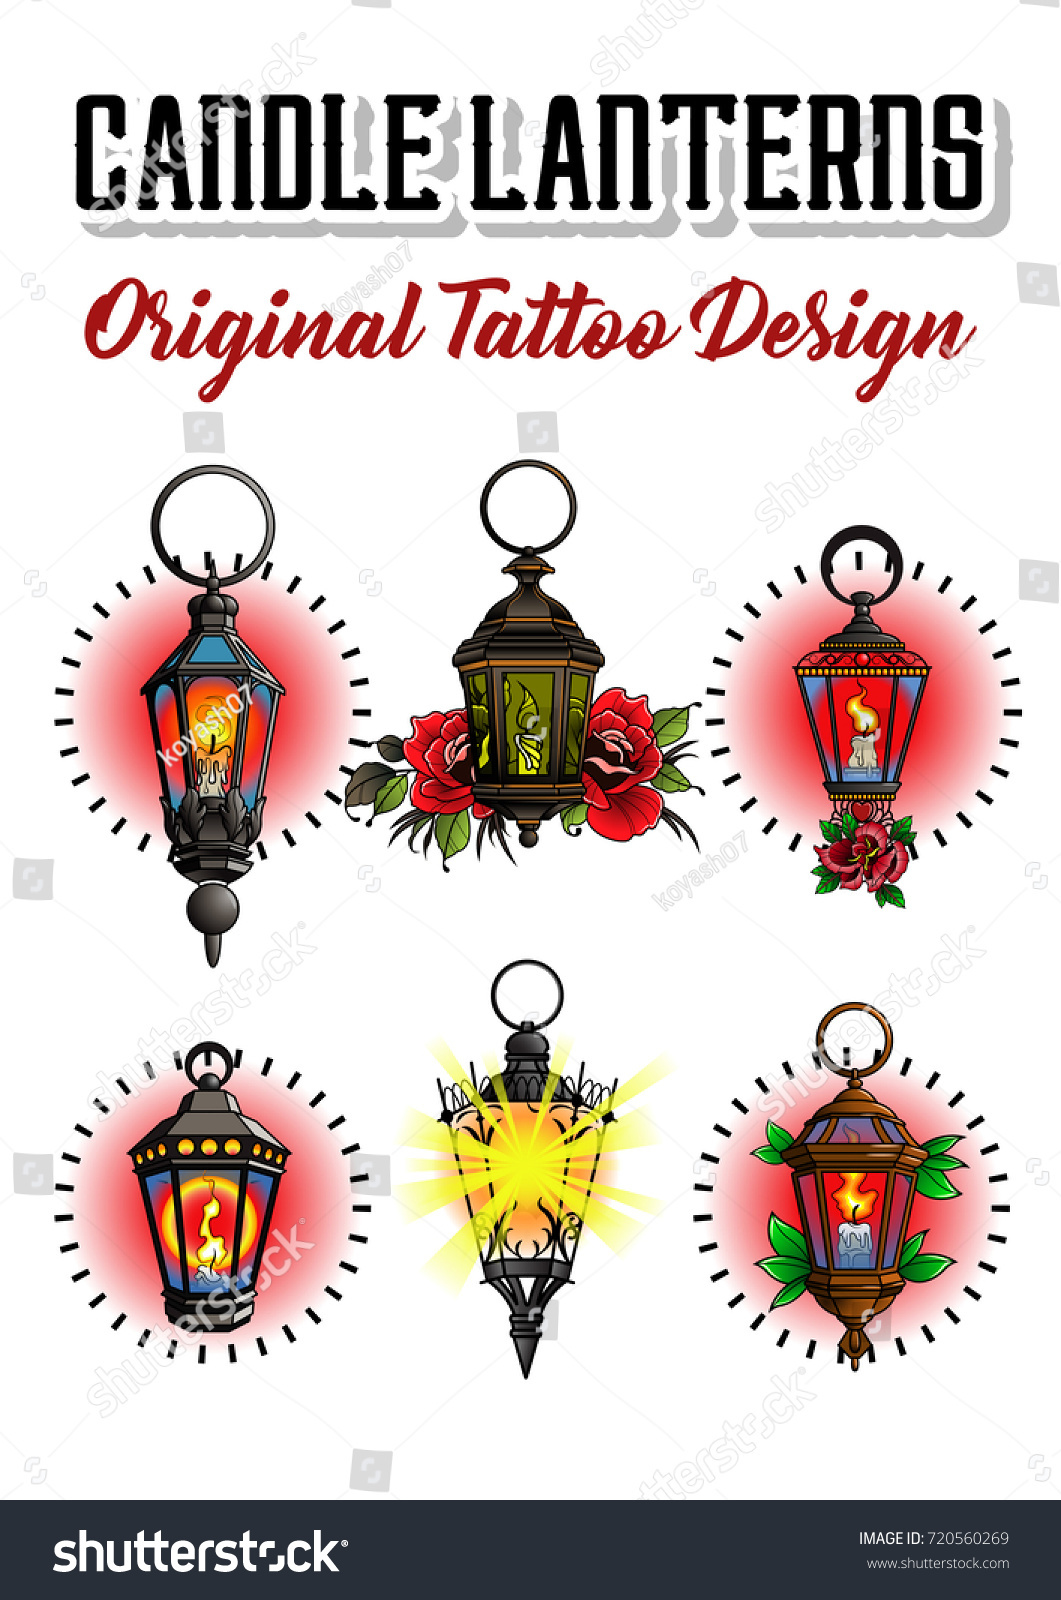 Vector Old Candle Lanterns Tattoo Design Stock Vector Royalty Free 720560269